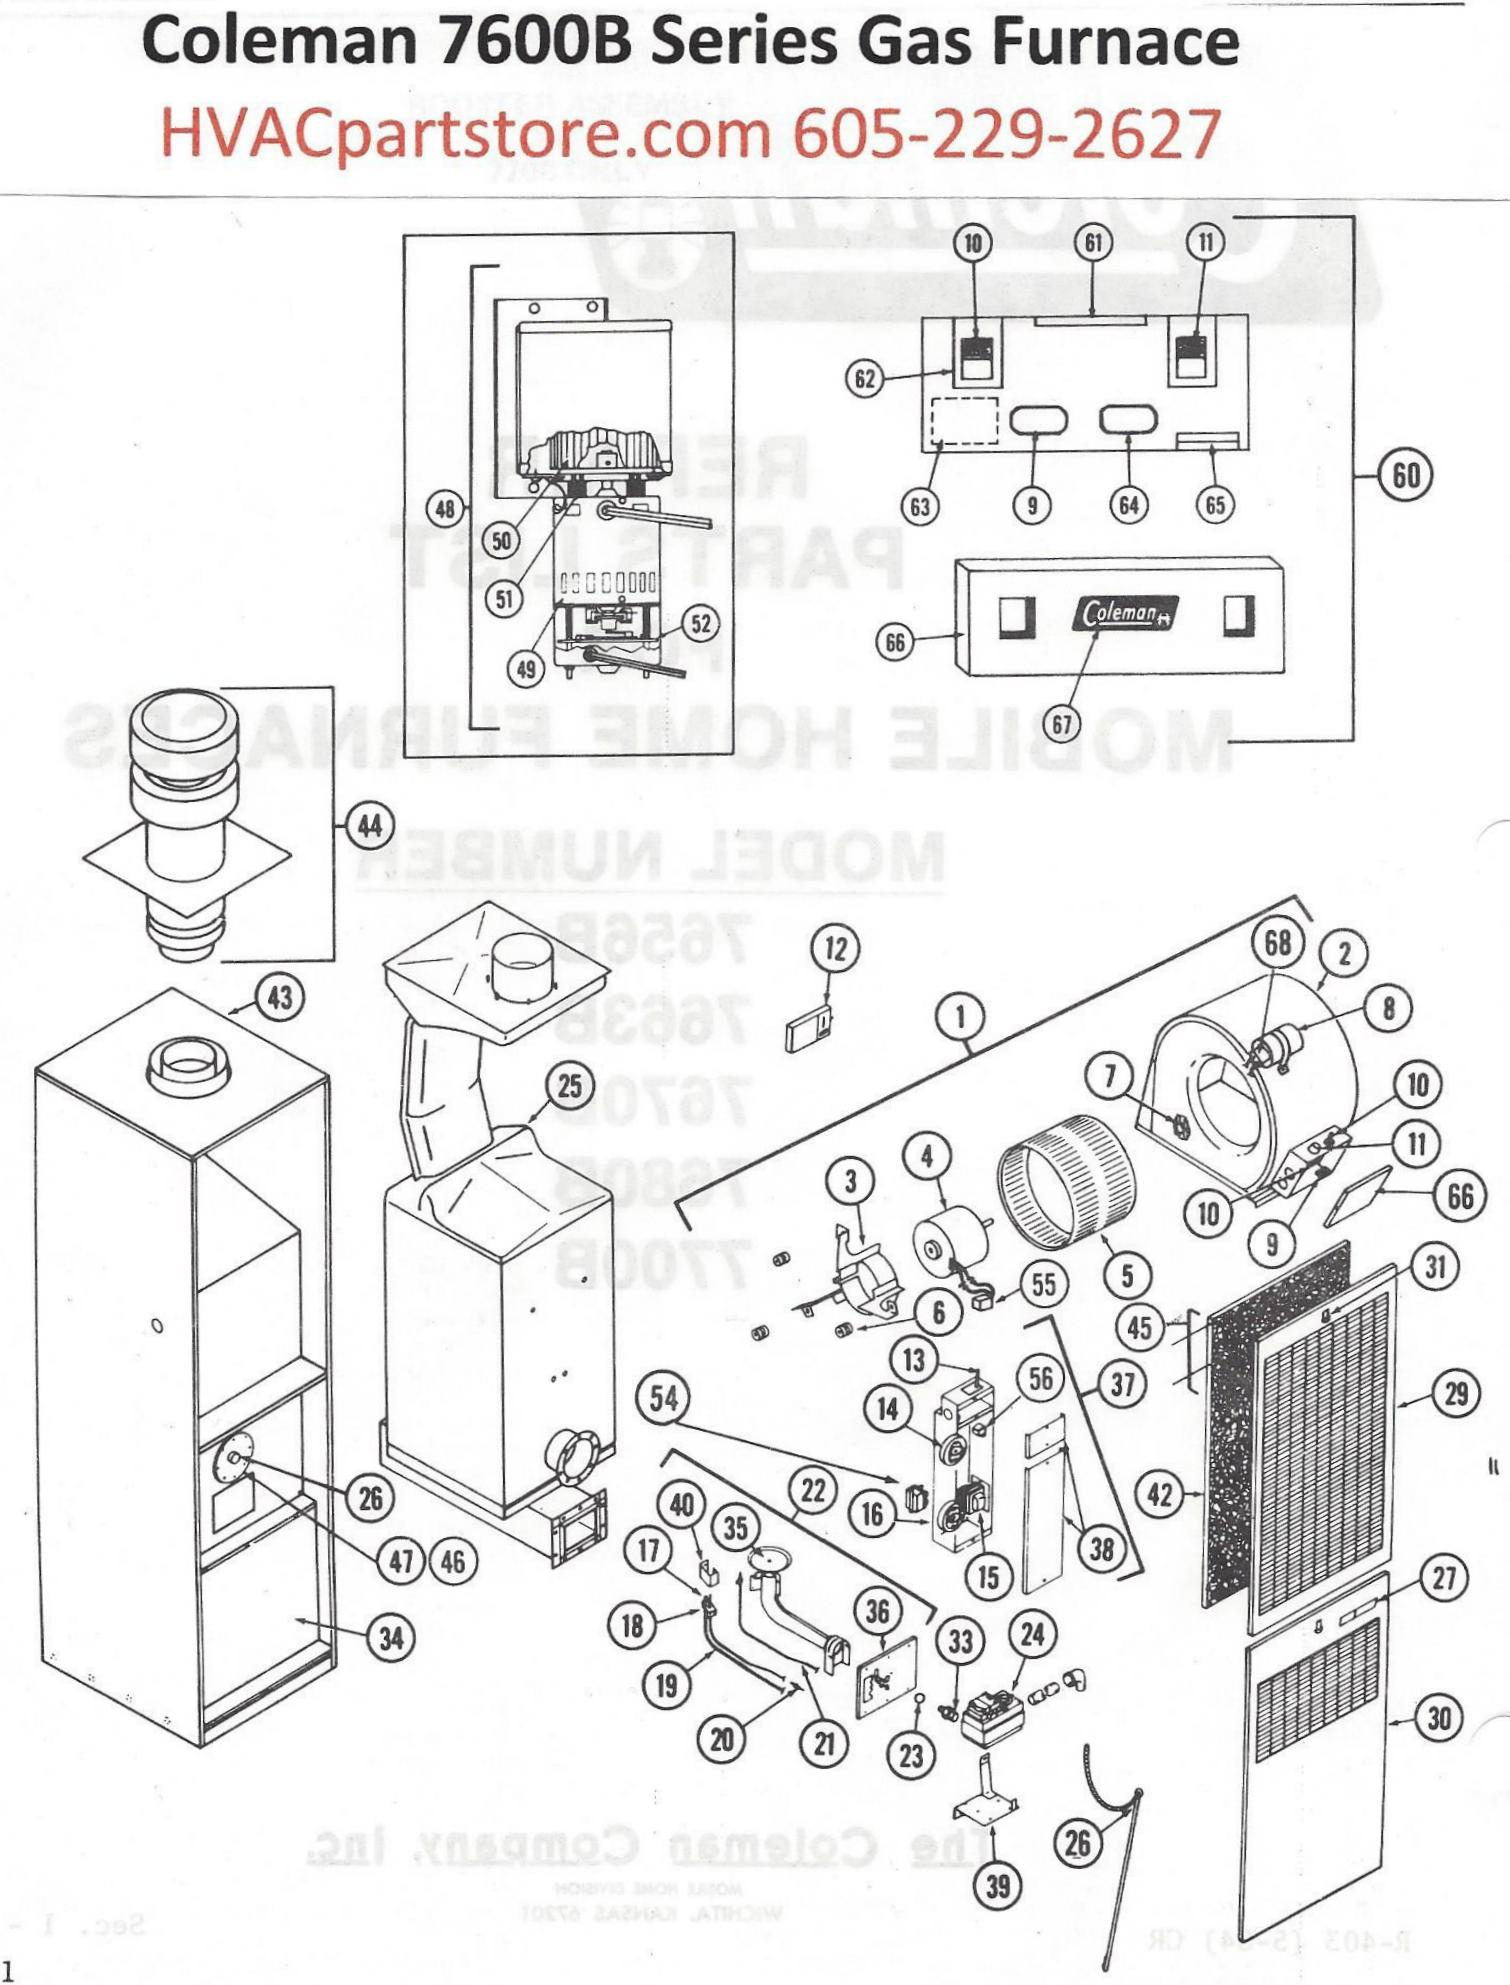 7600BDiagram?3087977773874111912 7656b856 coleman gas furnace parts hvacpartstore coleman furnace wiring diagram at honlapkeszites.co